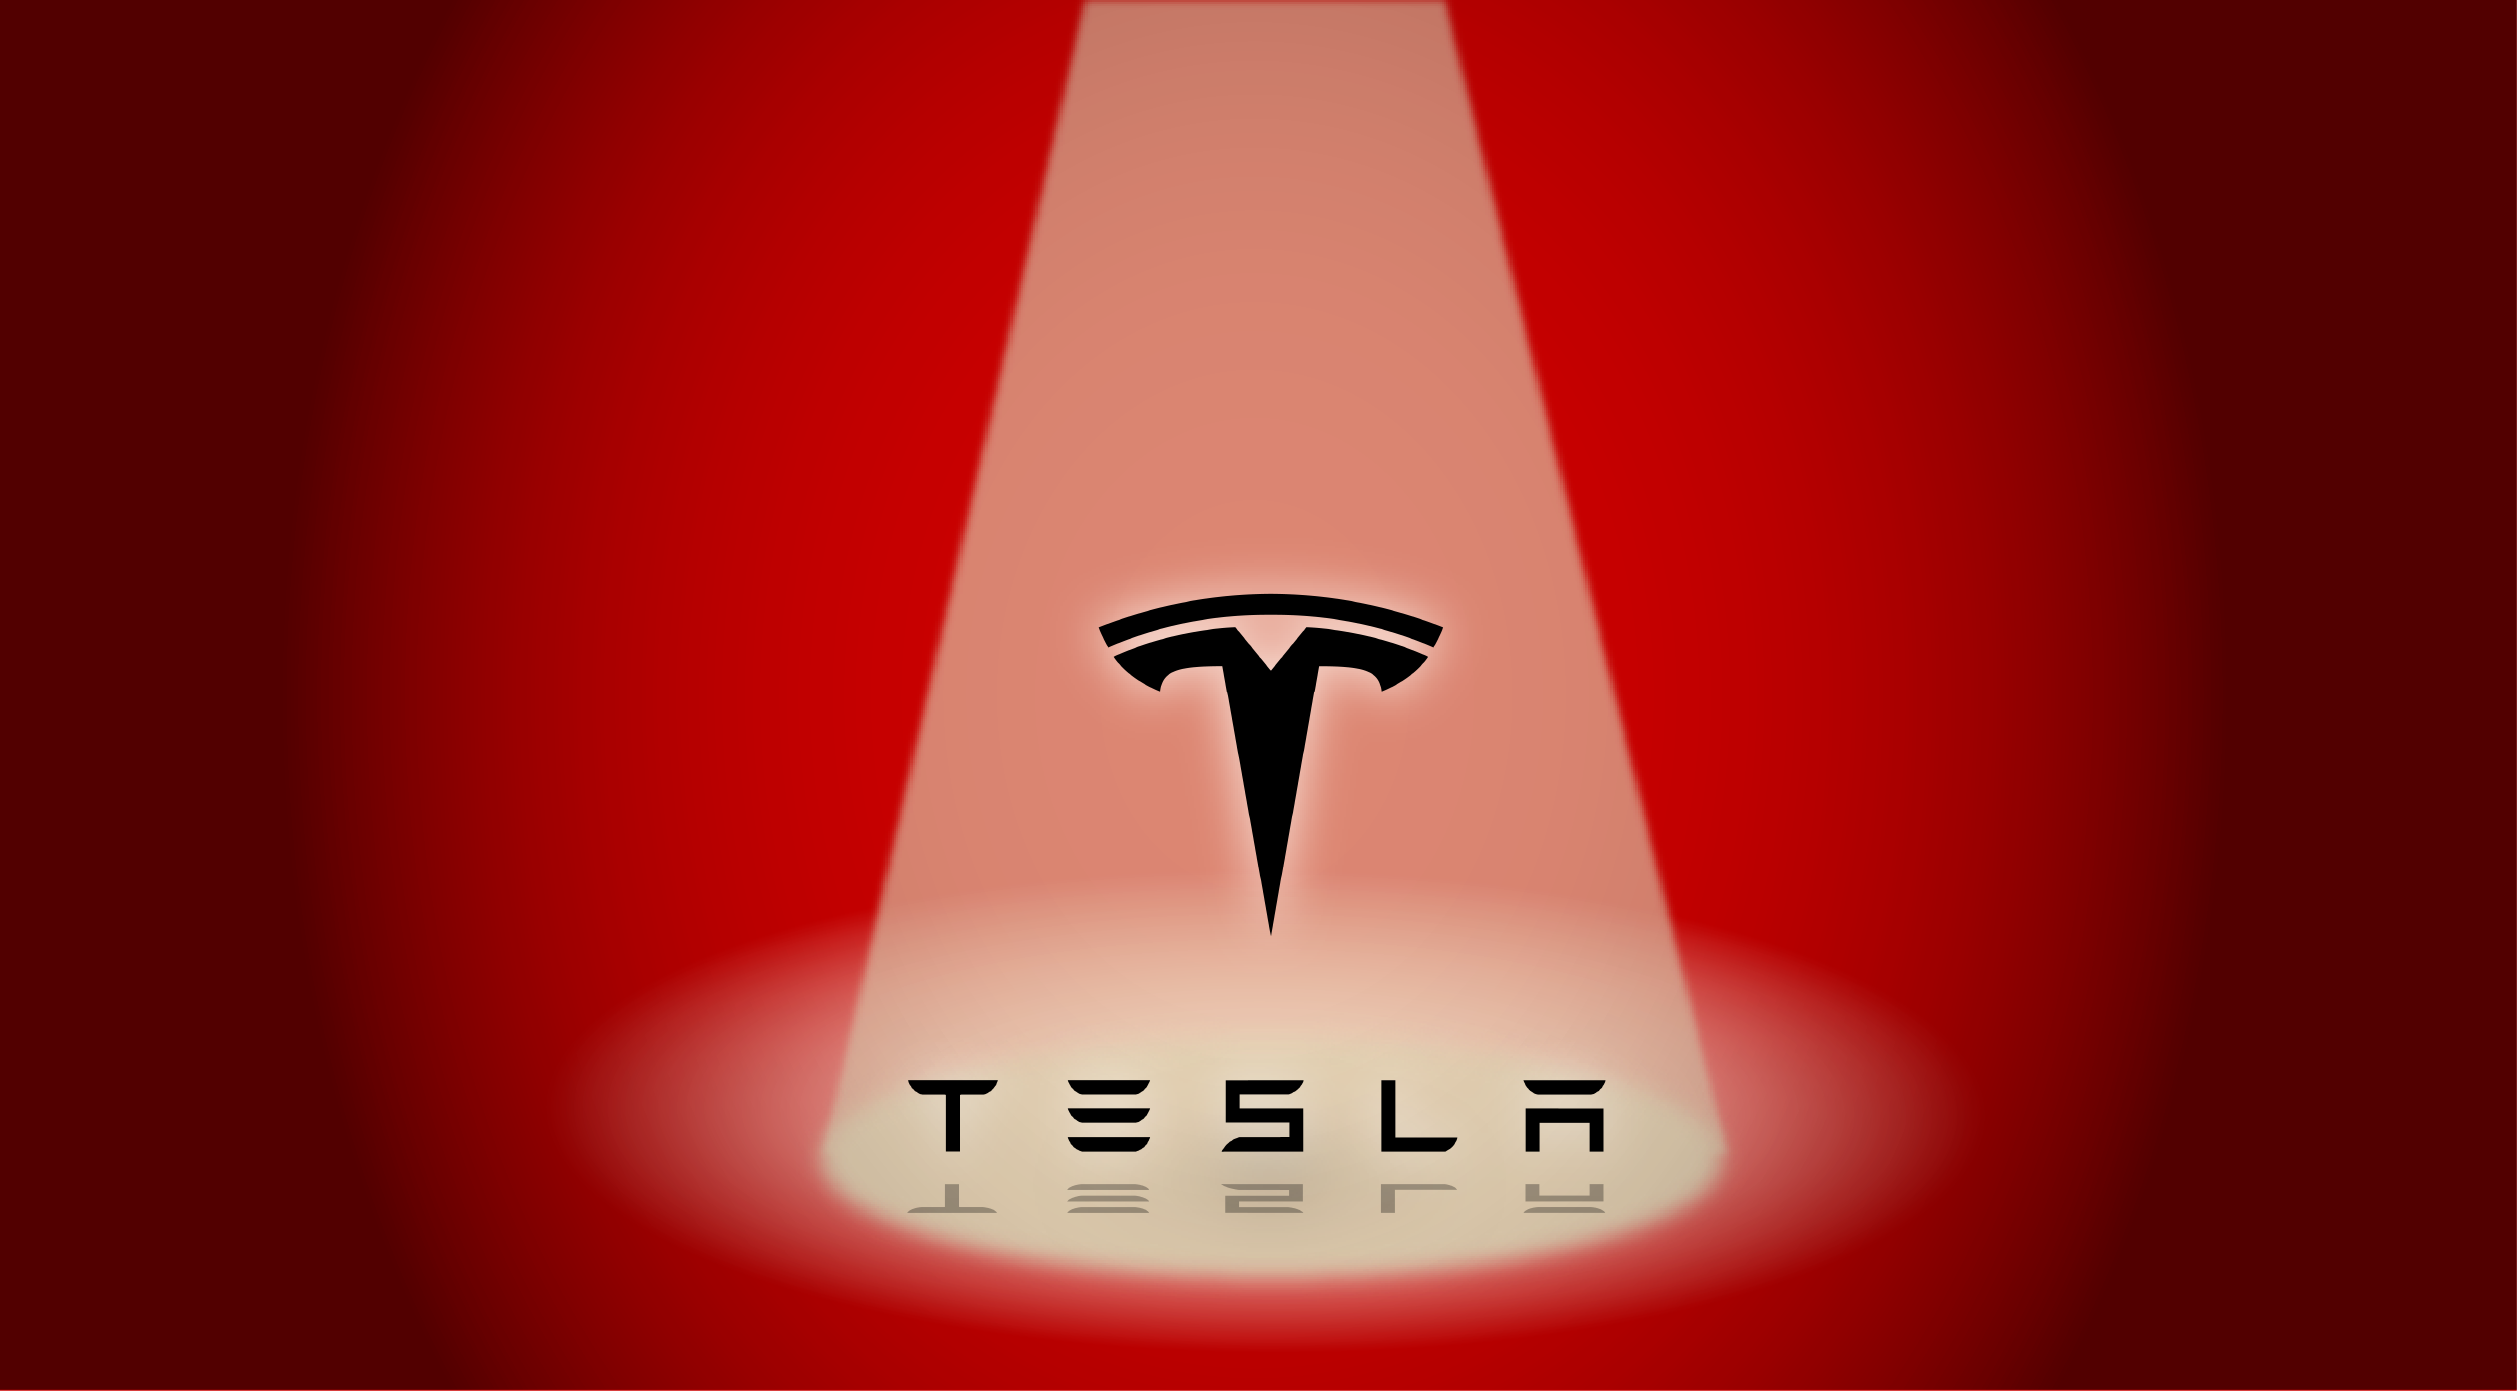 Tesla – on the road to a US $10 trillion company and beyond